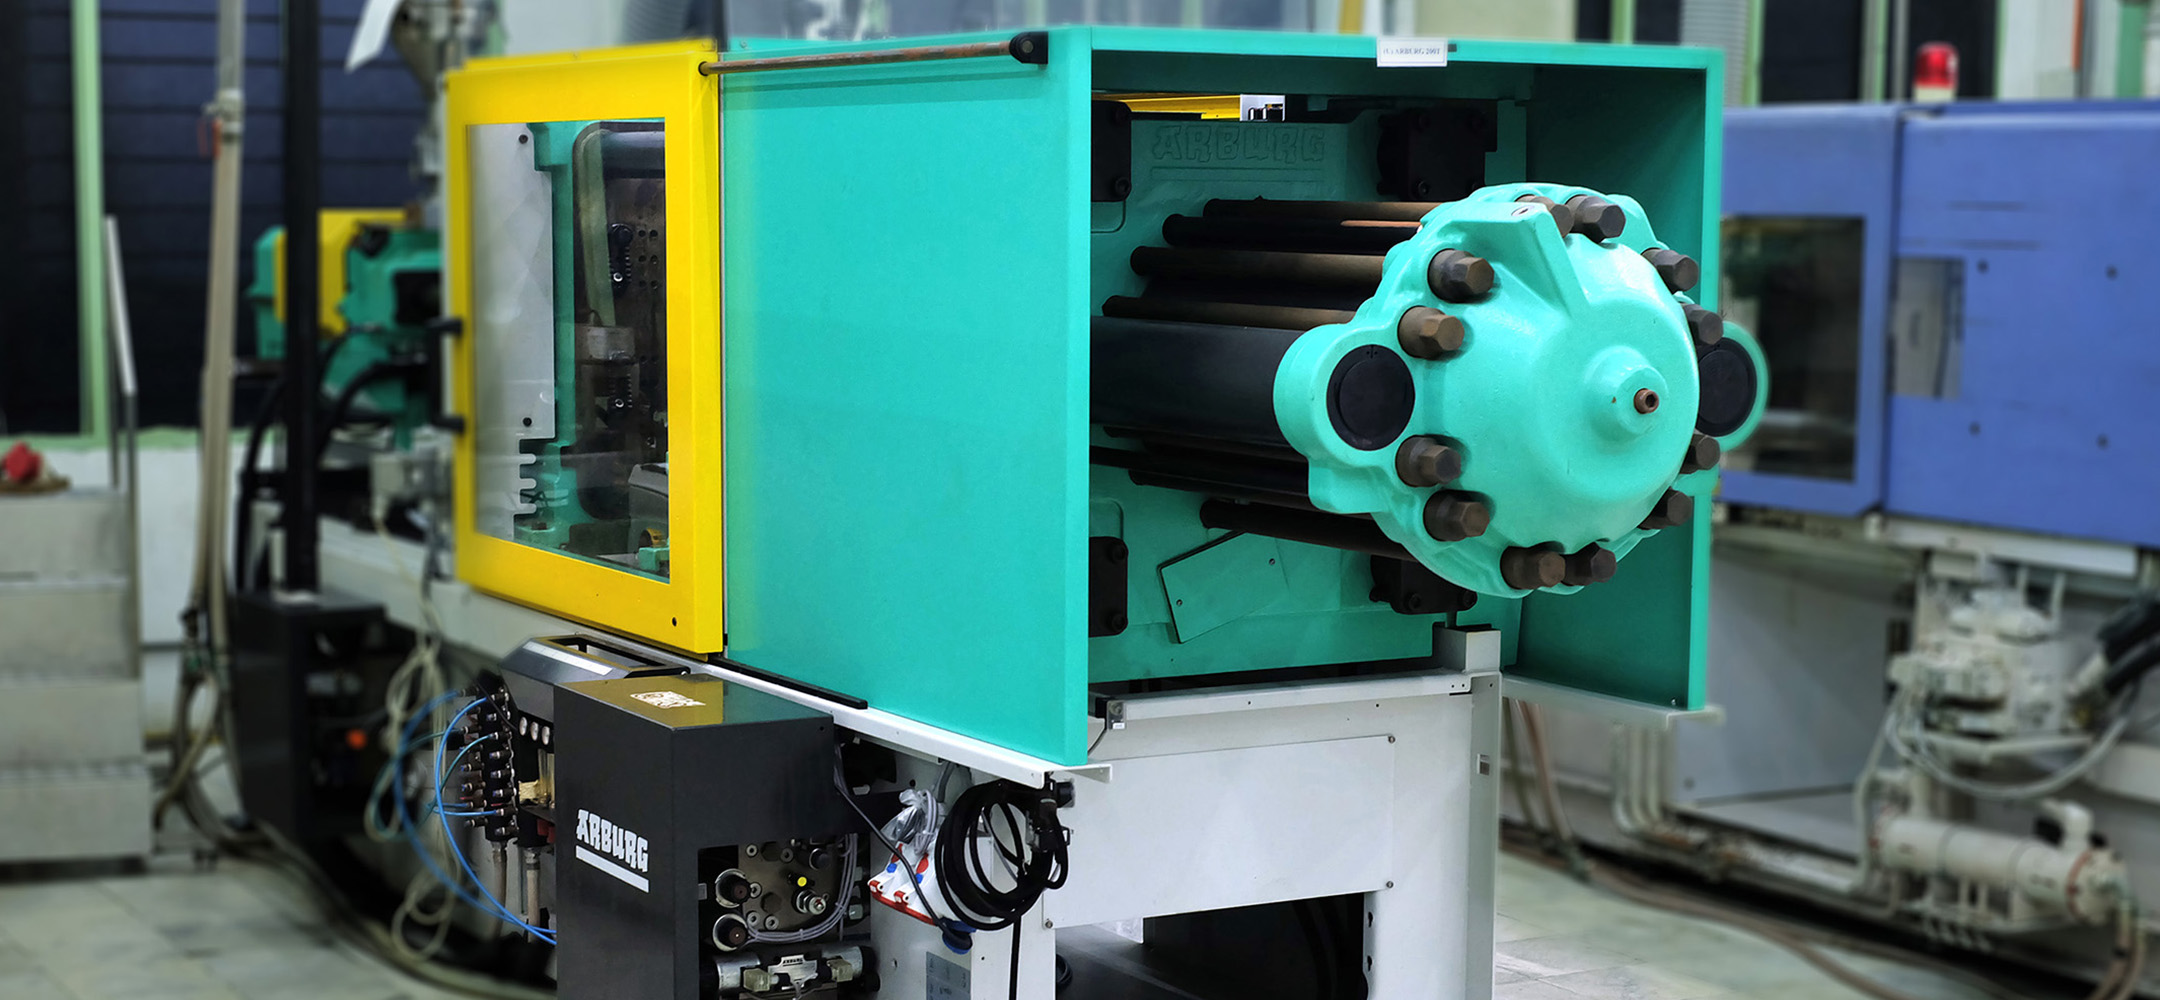 Cutting edge machinery and facilities